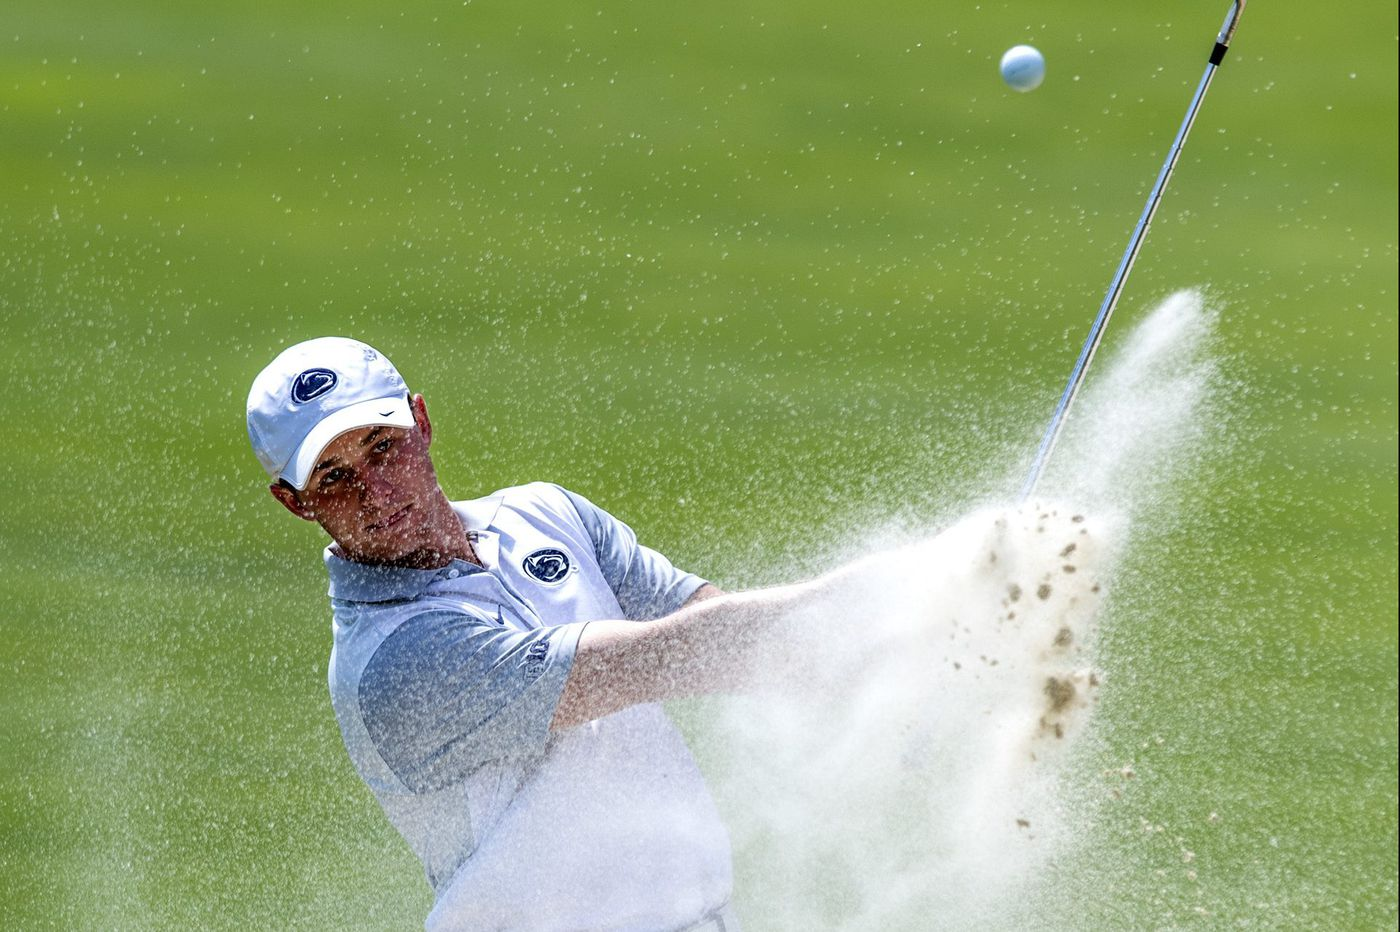 Former Penn State star Cole Miller qualifies for U.S. Open